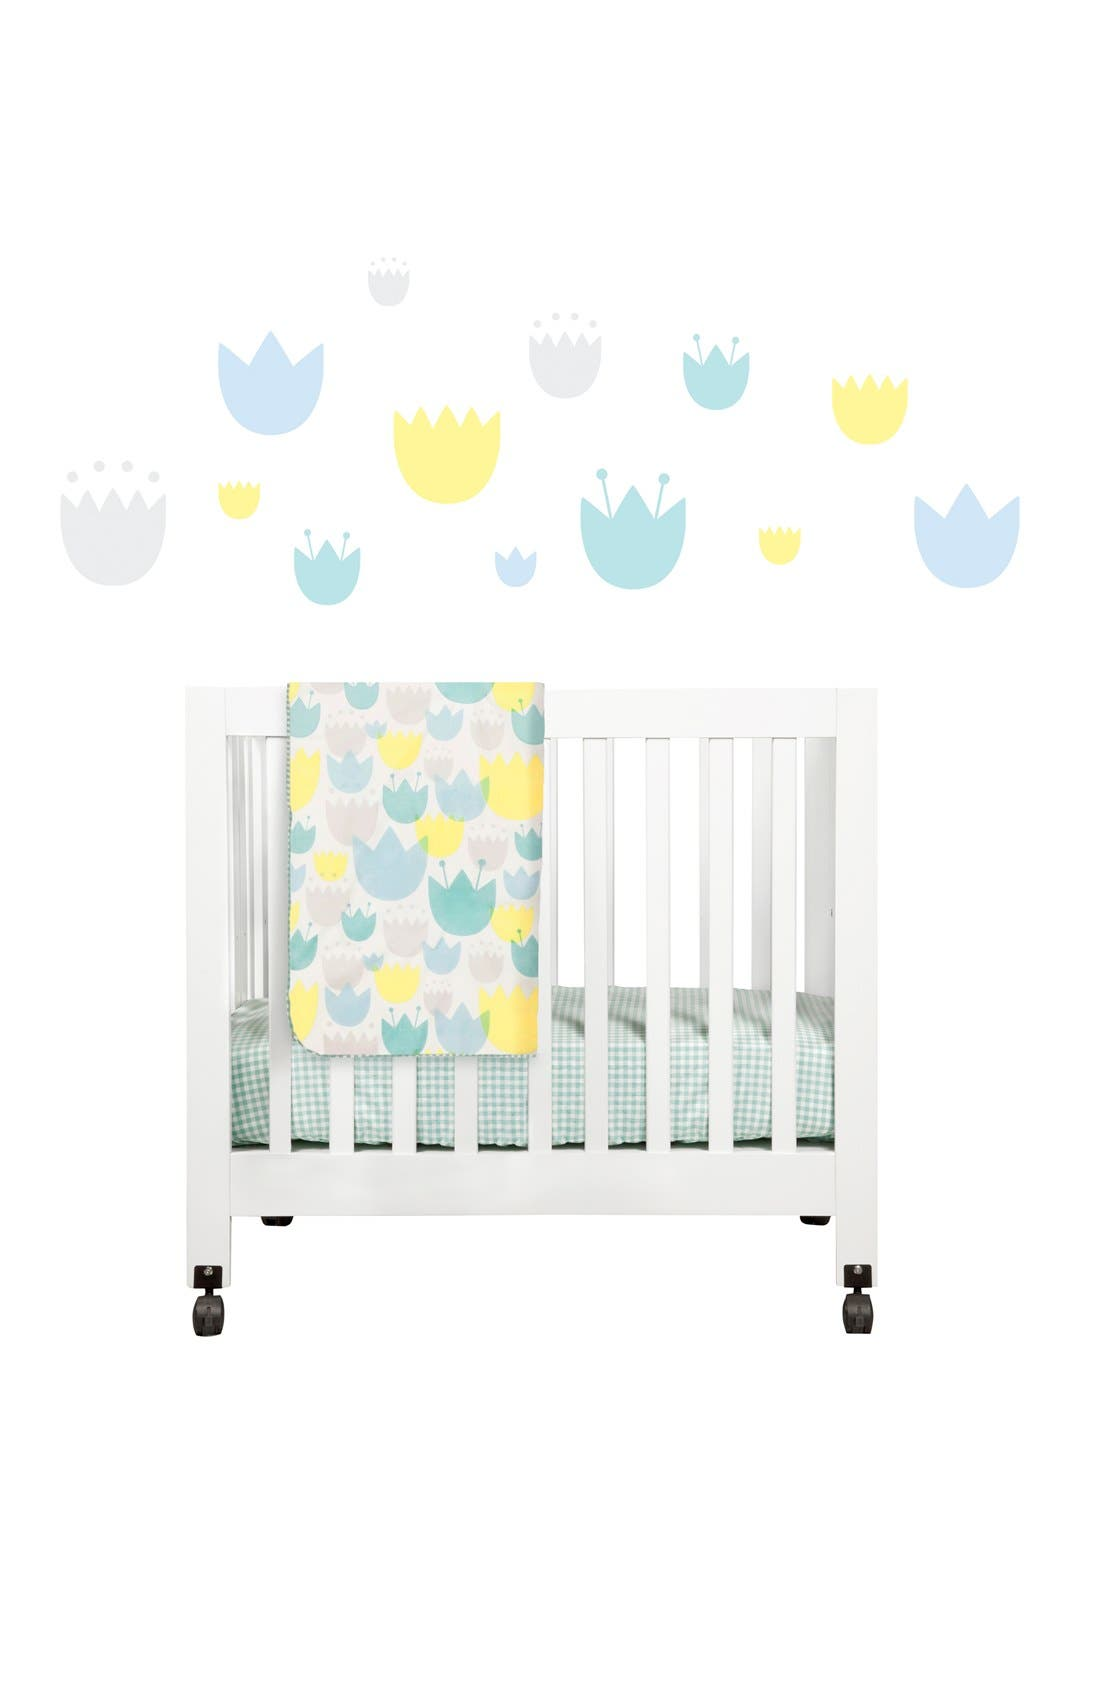 Main Image - babyletto 'Garden' Mini Crib Sheet, Changing Pad Cover, Stroller Blanket & Wall Decals